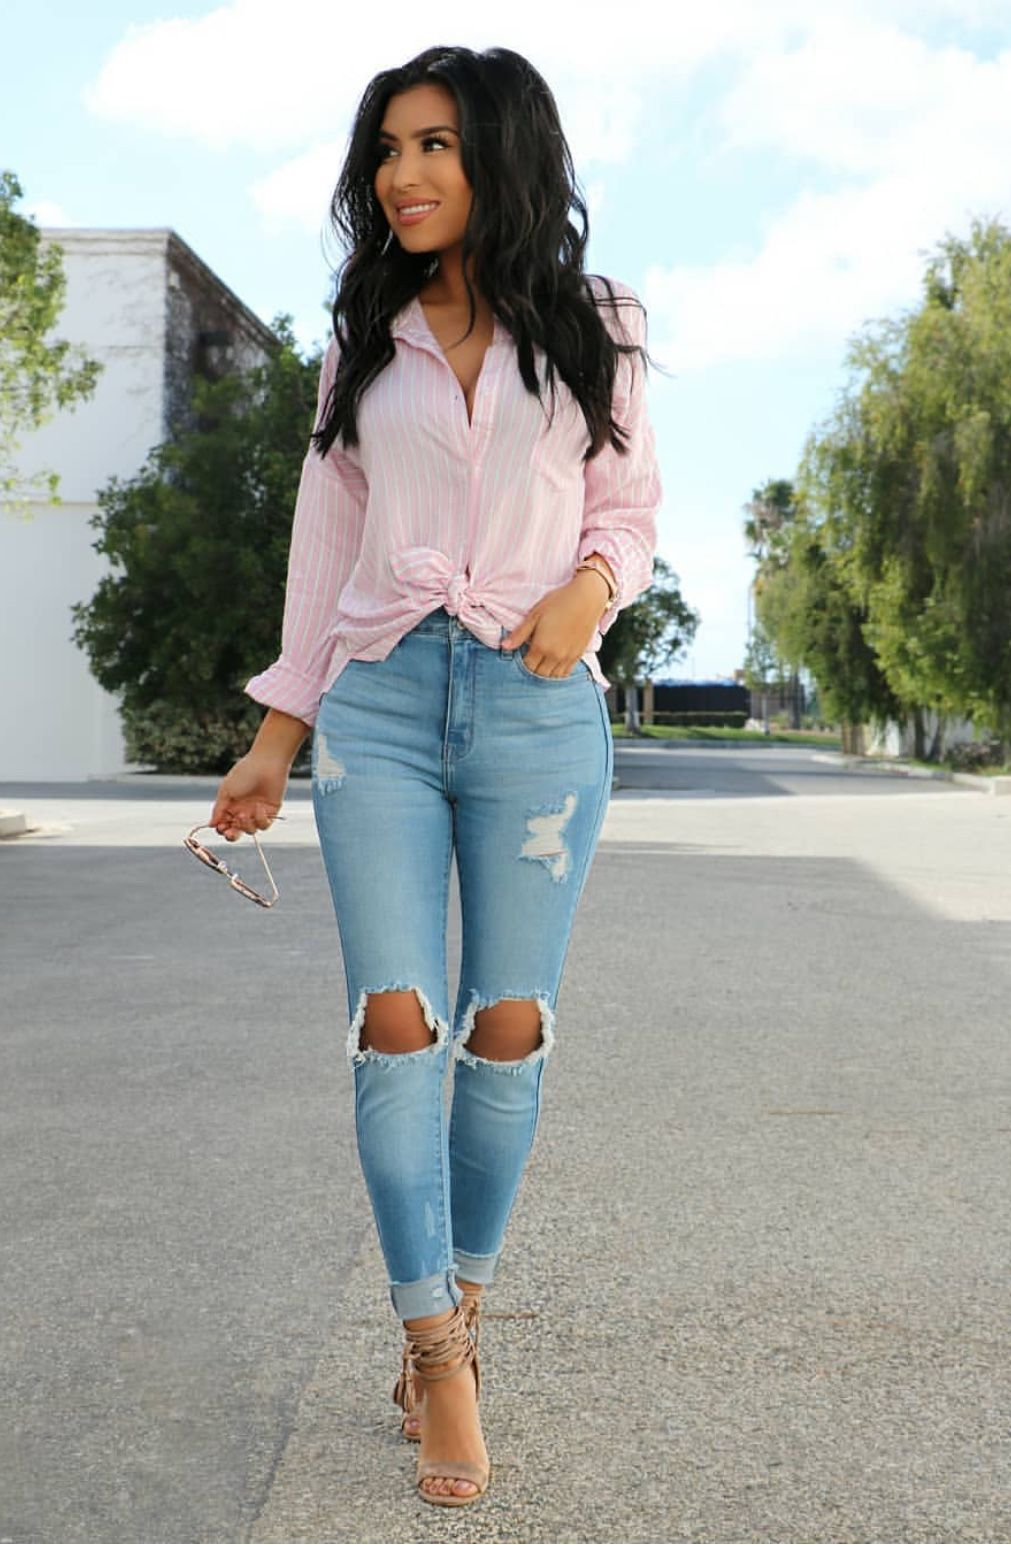 Cute Outfit And So Easy To Copy Stylish Outfit Ideas For Women Who Follow Fashion From Ze Stylish Summer Outfits Professional Summer Outfits Stylish Outfits